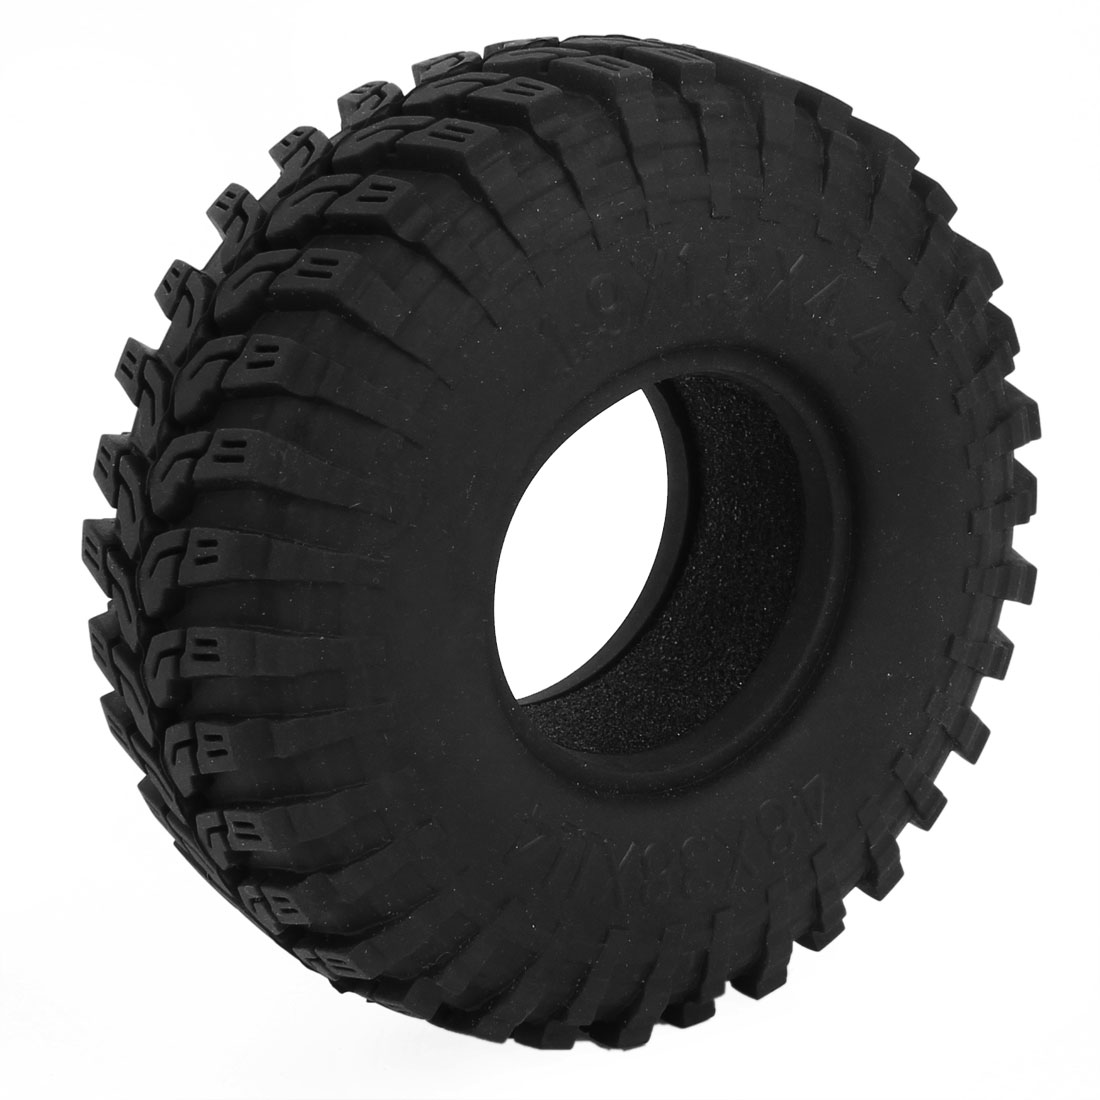 48mm Inner Dia RC Model Racing Touring Car Crawler Tire for RC4WD F350 SCX10